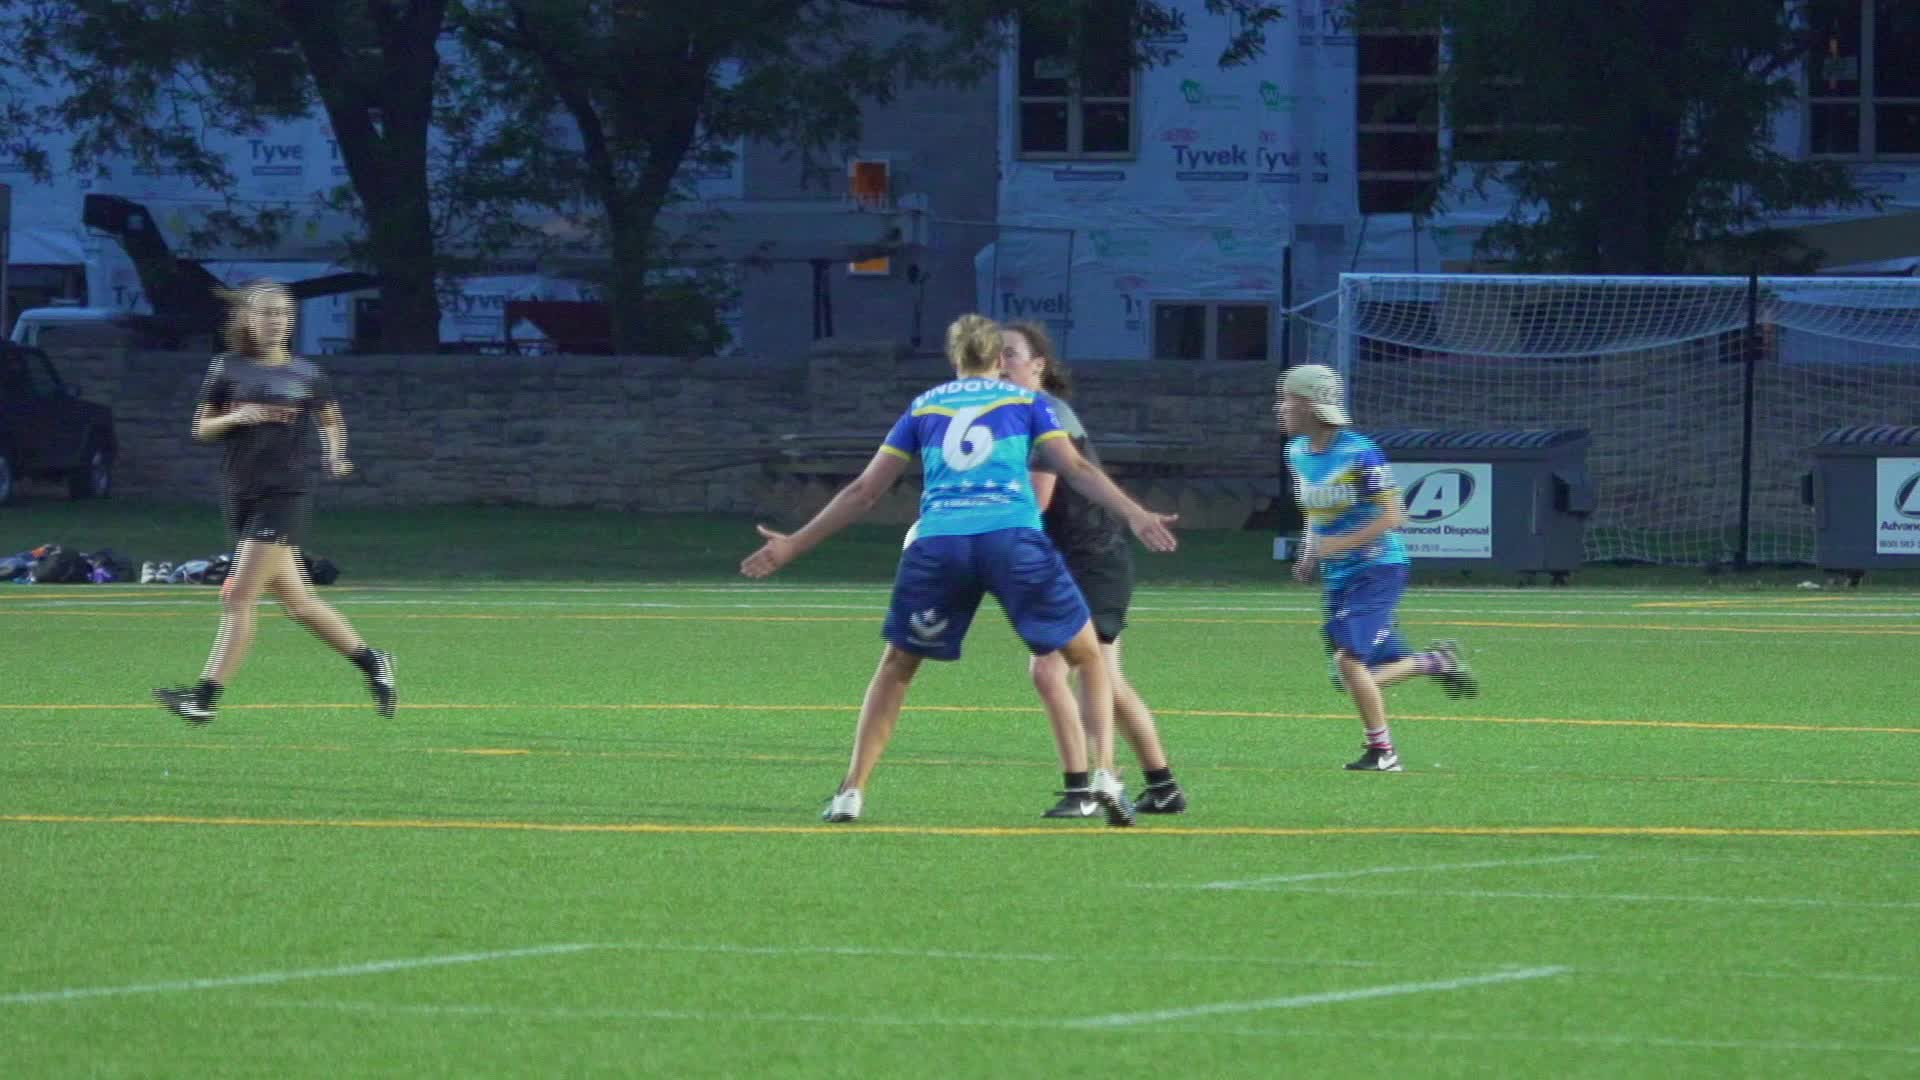 american ultimate disc league, audl, ultimate, ultimate frisbee, Robyn Wiseman Layout Goal GIFs